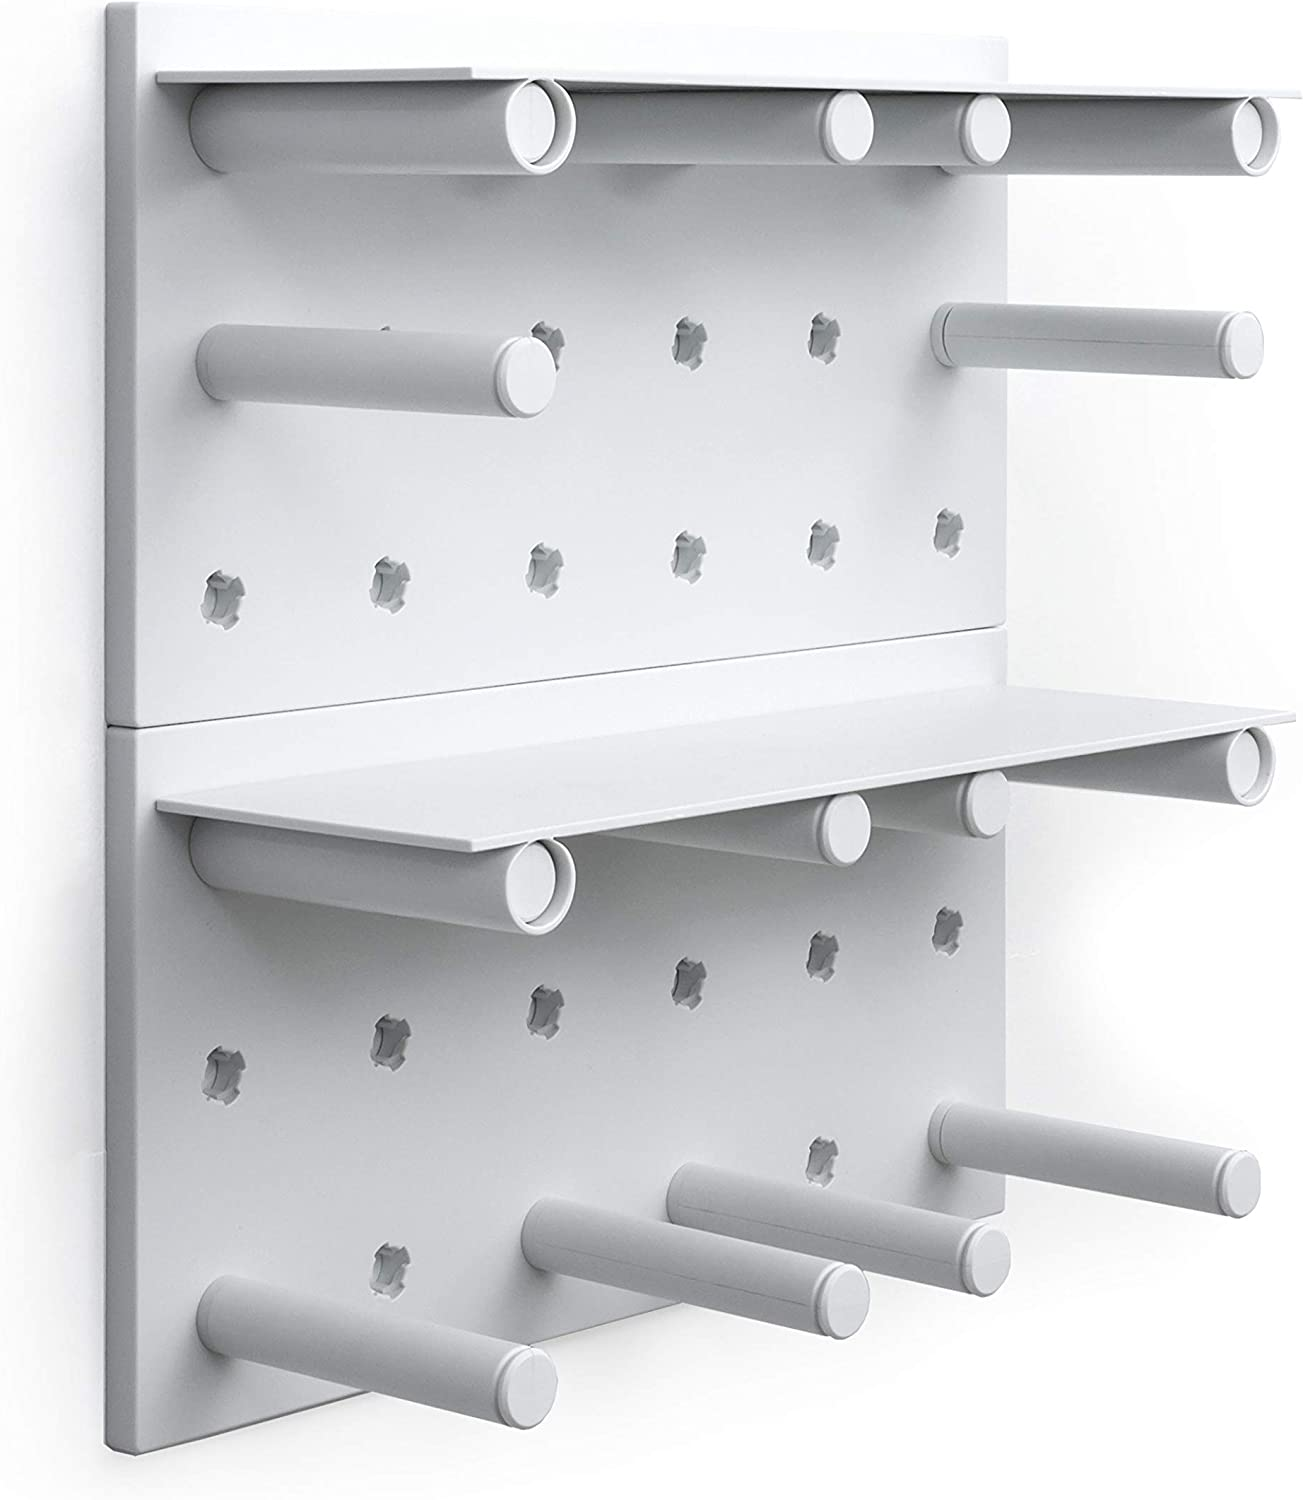 Morspace Peg Board Wall Display - Beautifully organise Your Home, Garage, Kitchen, Bedroom or Office Space with pegboard Wall décor and Organization (White)